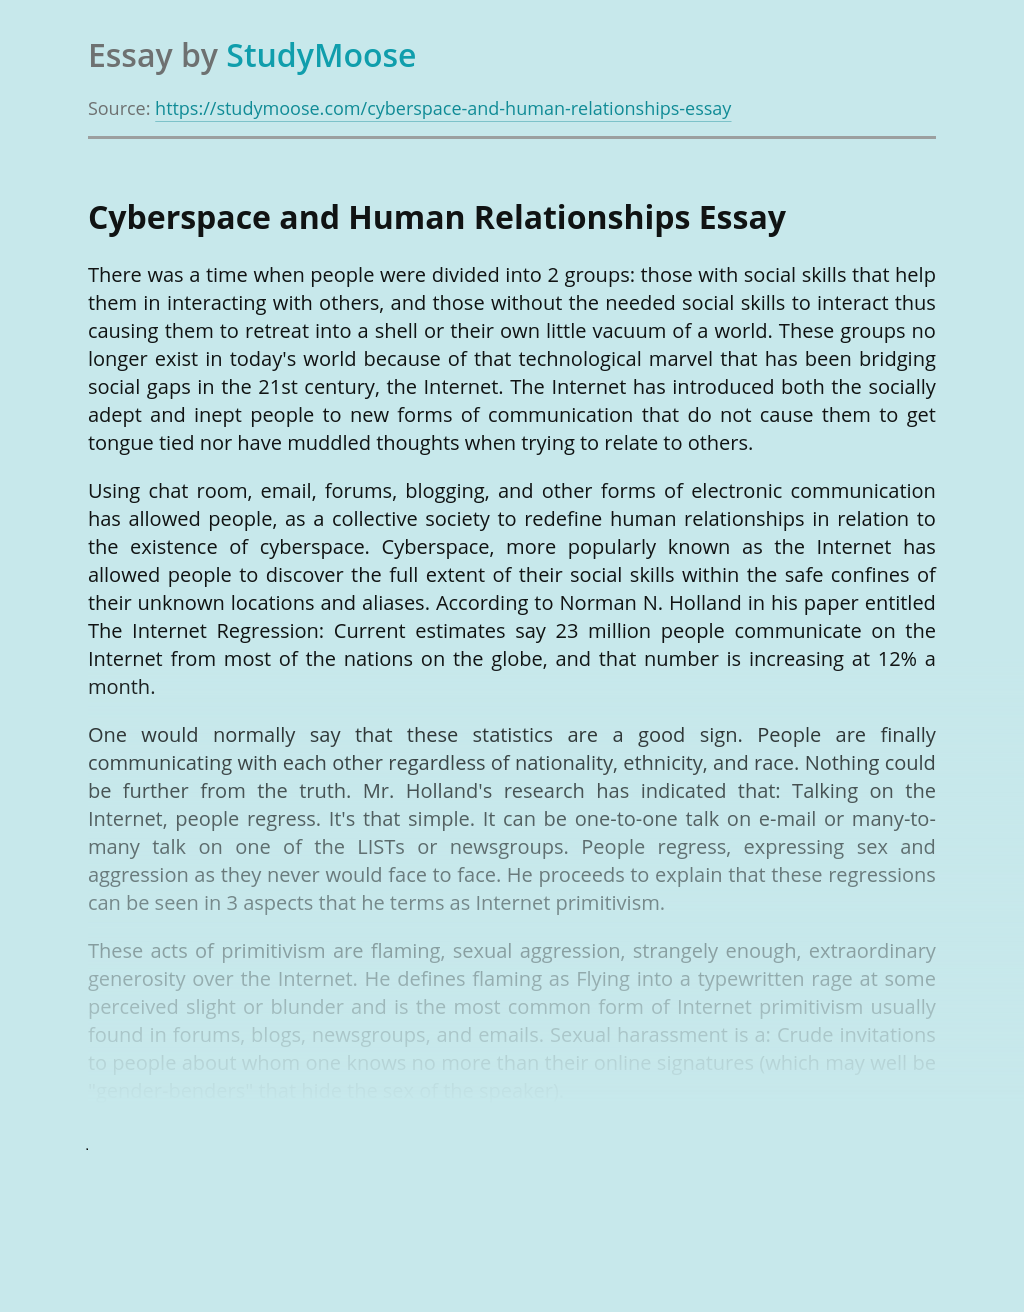 Cyberspace and Human Relationships